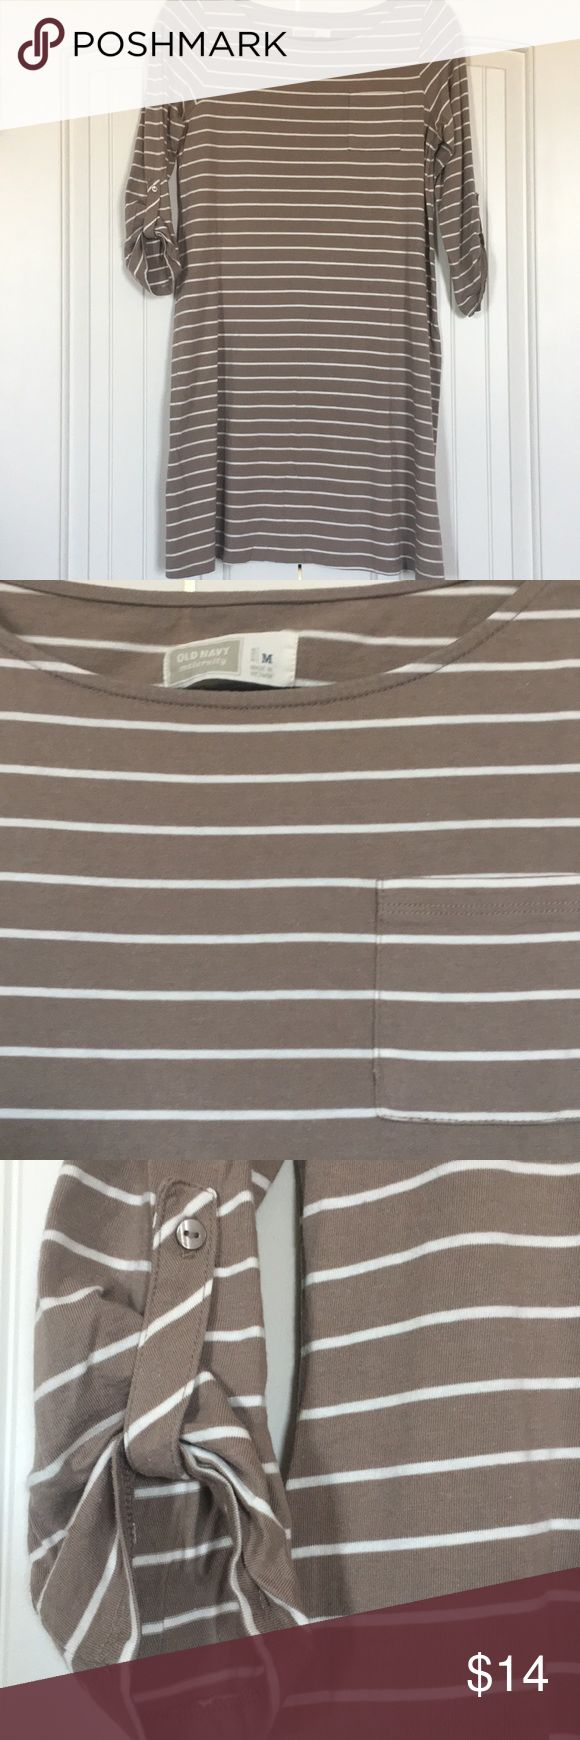 Old Navy Maternity Dress Striped maternity dress with chest pocket.  Great for first and second trimesters.  3/4 length sleeves with button gathering.  Hits above the knee.  Excellent condition.  No stains, holes, or pilling. Old Navy Dresses